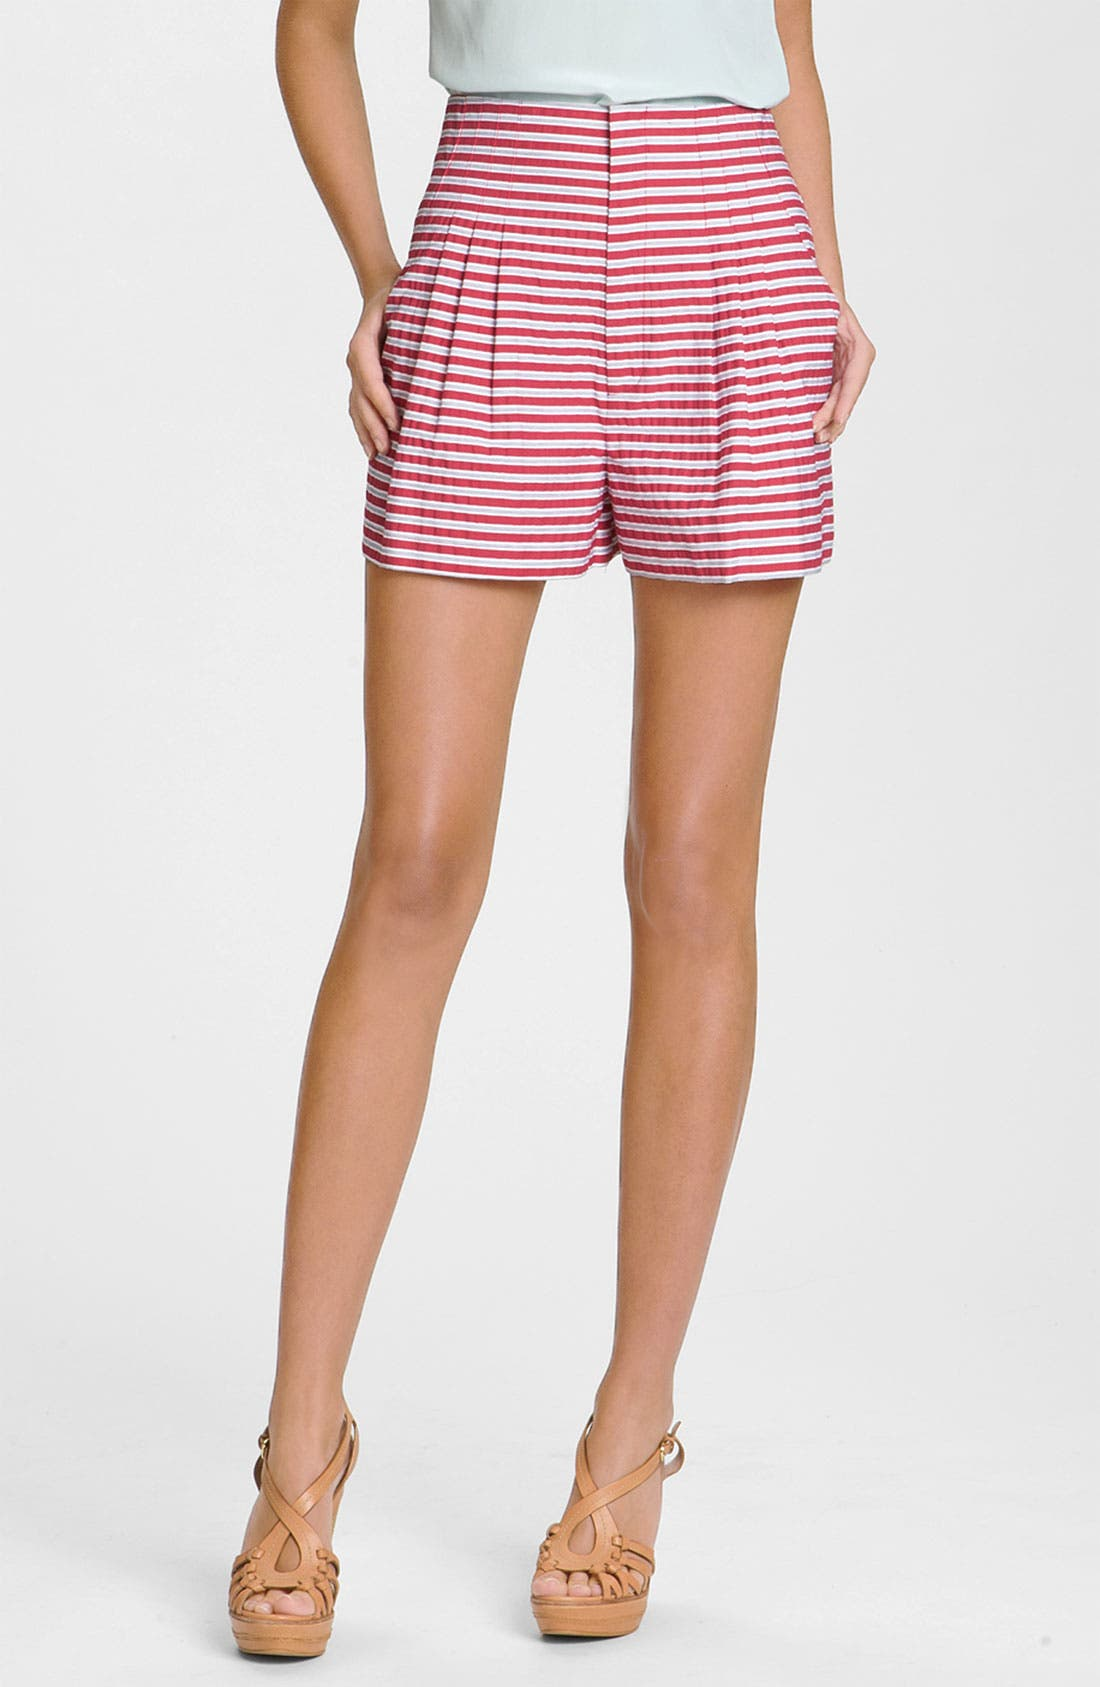 Alternate Image 1 Selected - Nanette Lepore 'Gold Rush' Striped Pleated Shorts